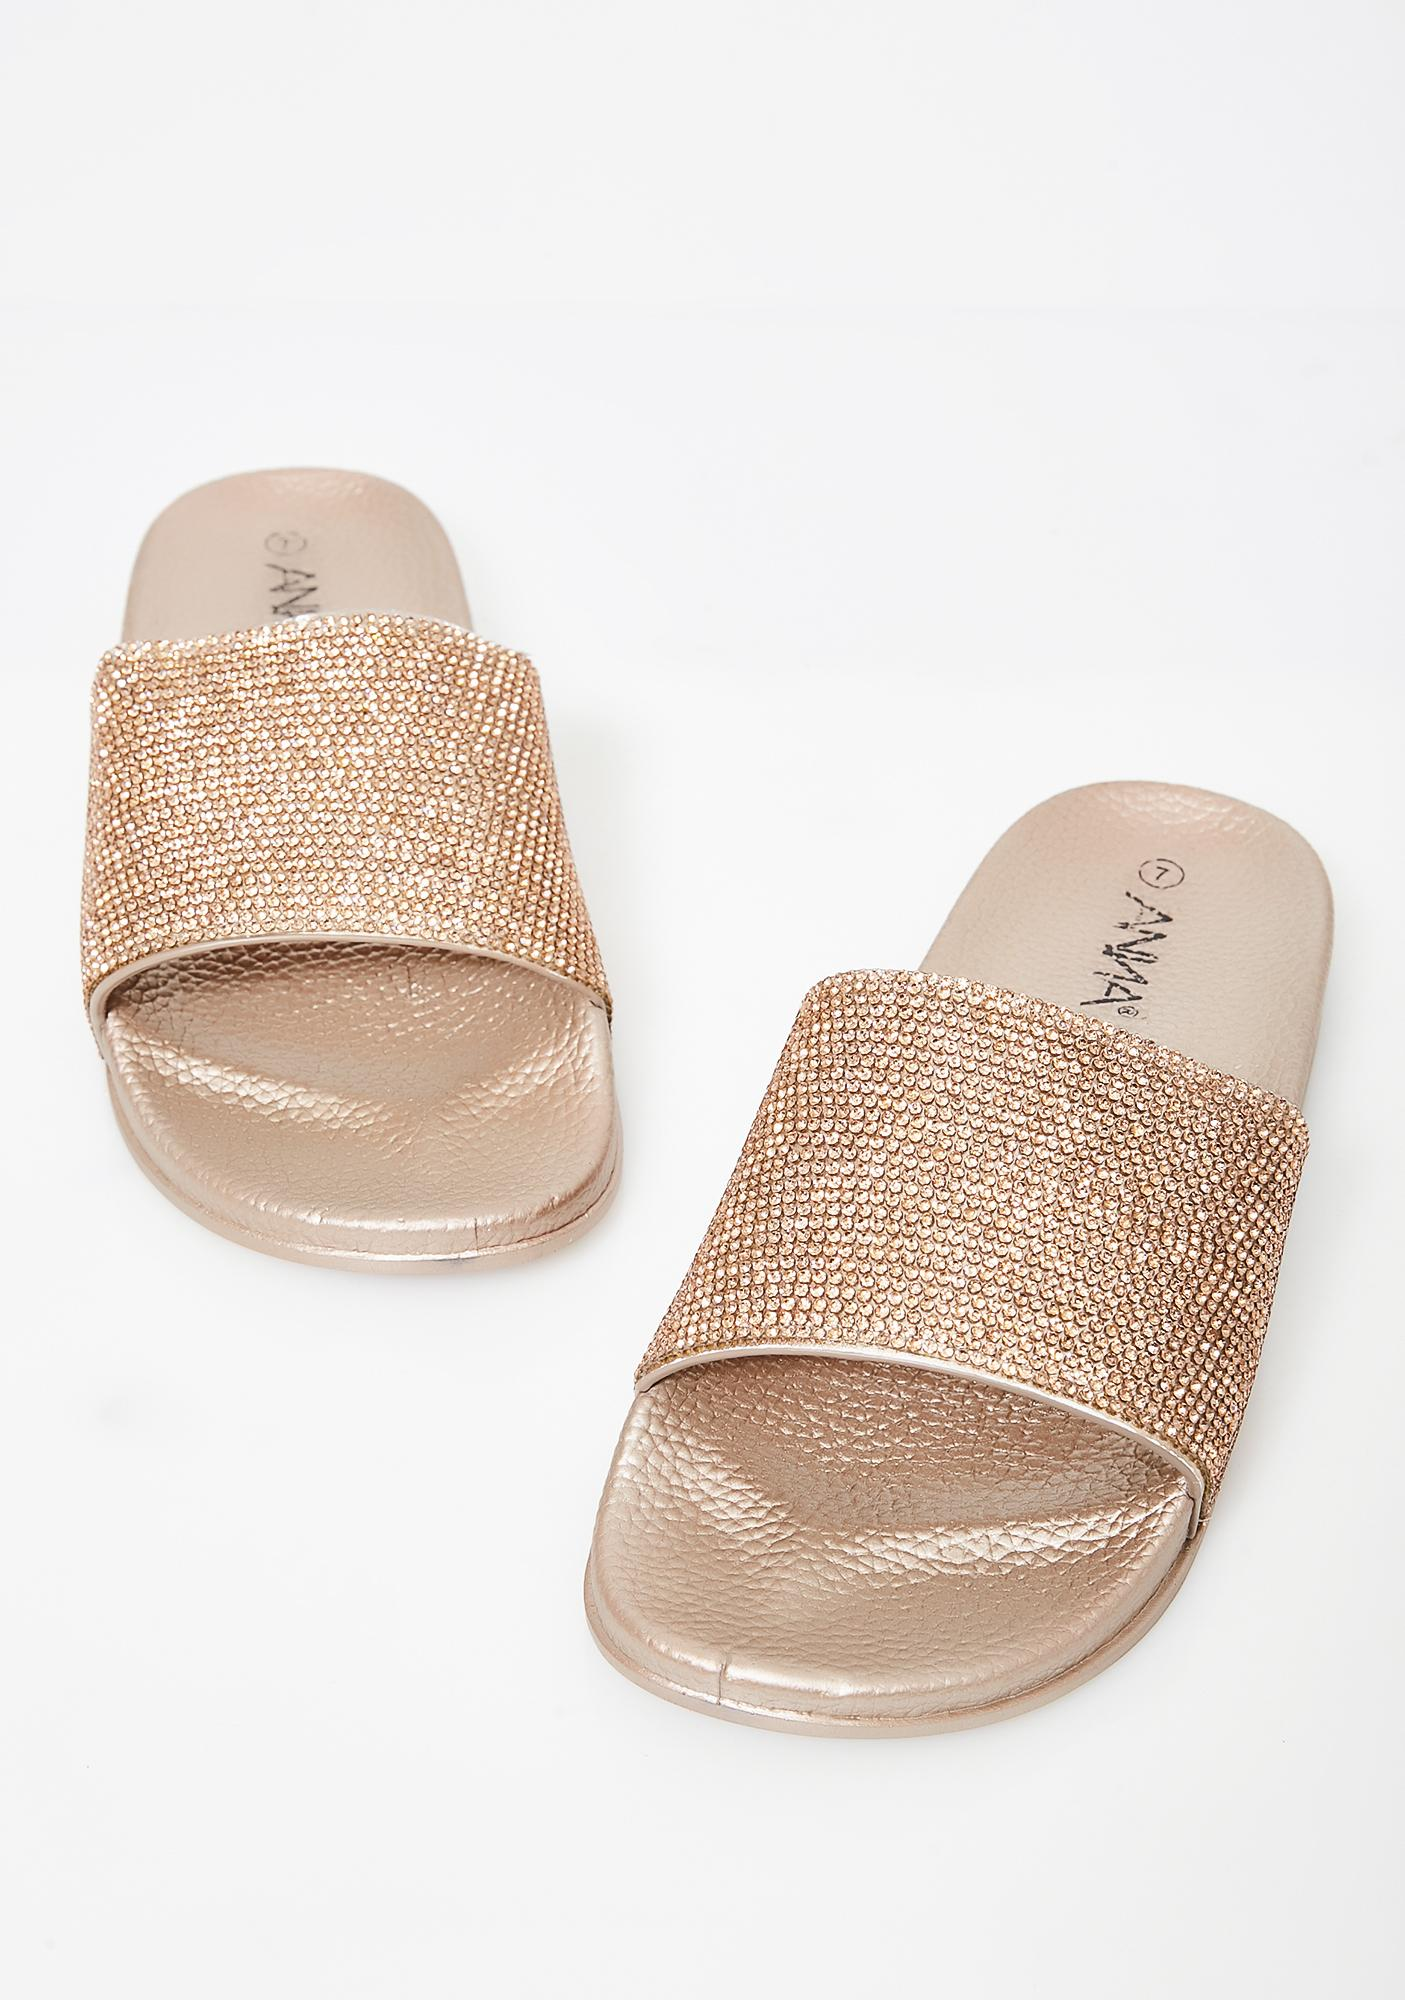 Bronze Livin' Lavish Slides